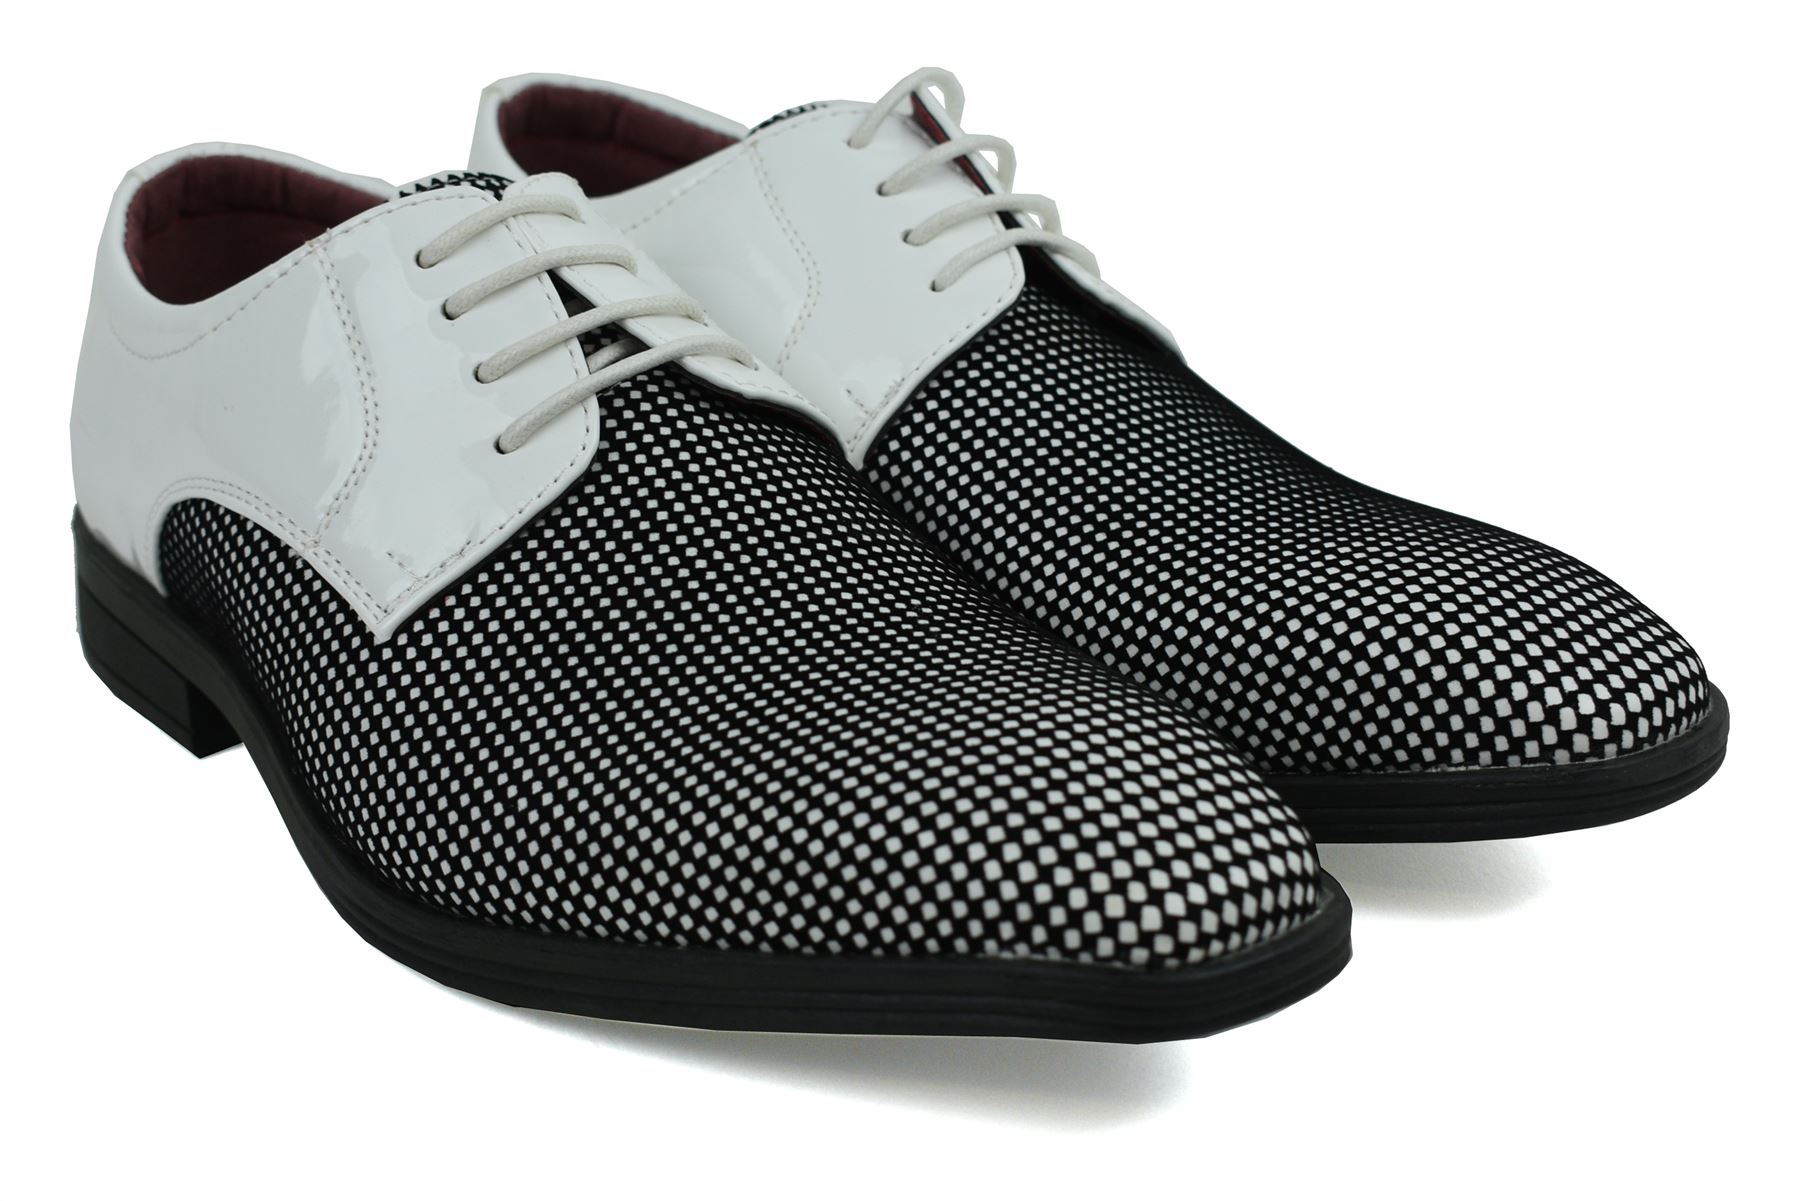 Mens-UK-Style-Leather-Lining-Formal-Office-Wedding-Smart-Work-Brogue-Shoes thumbnail 98